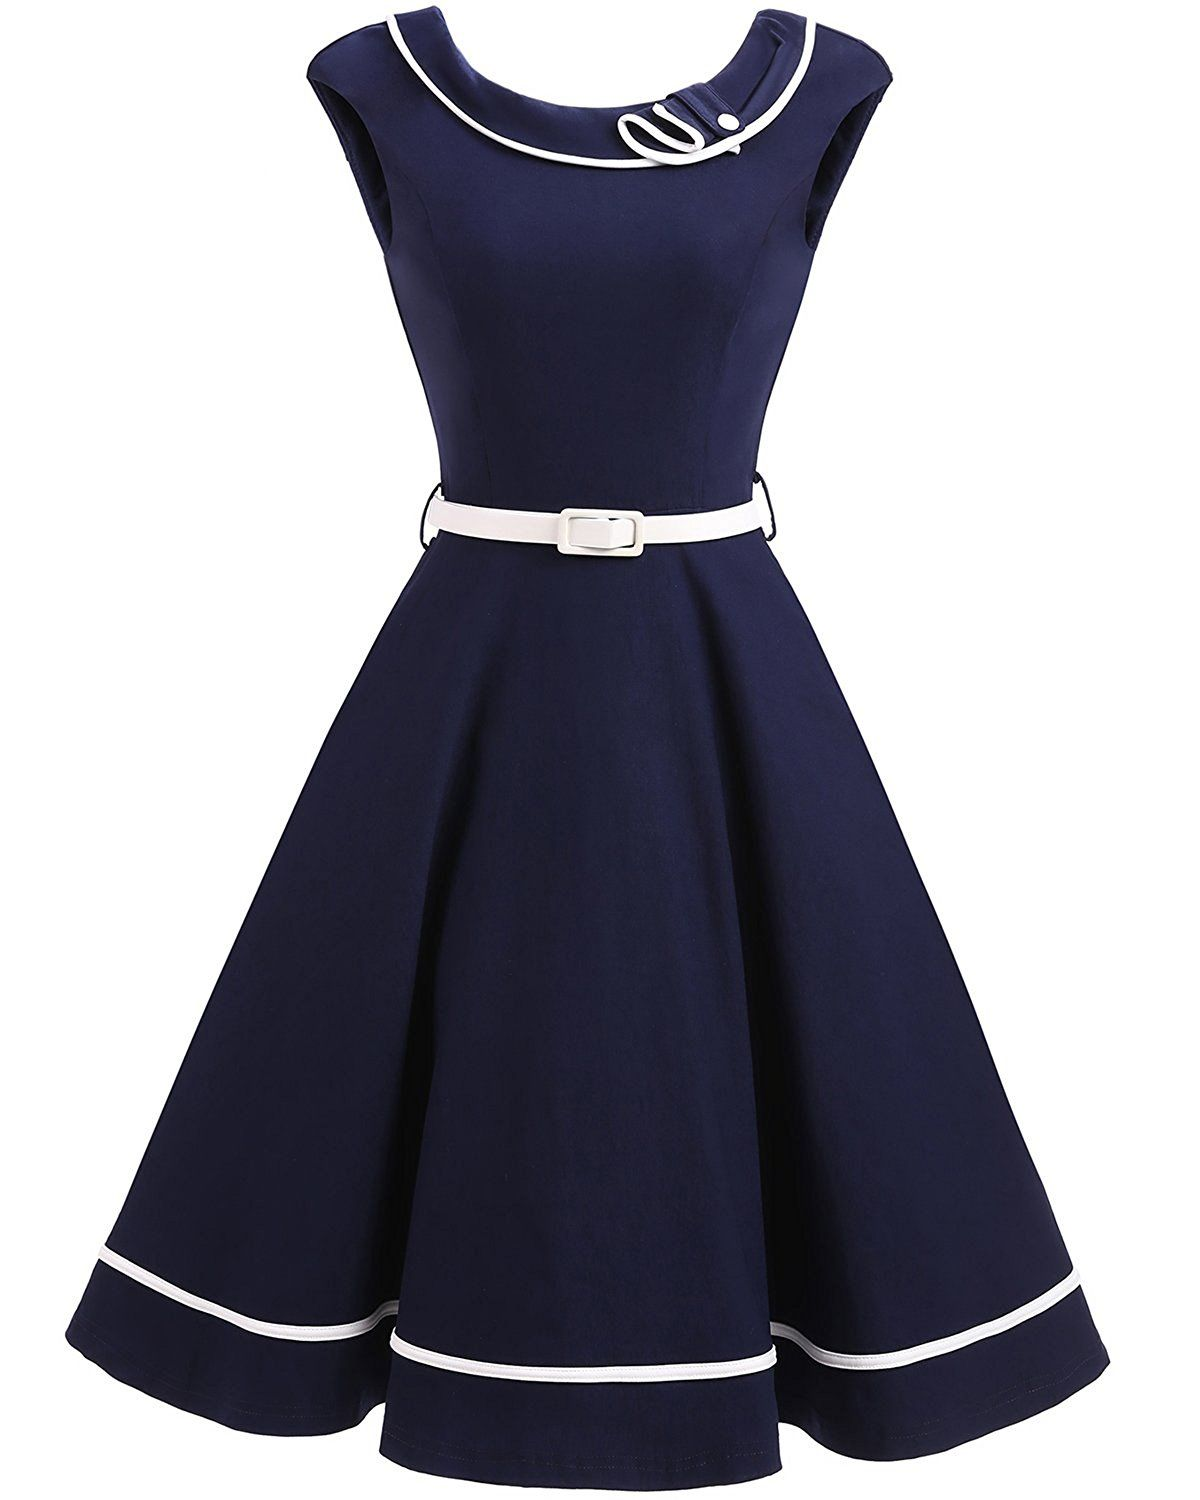 f008e695cc1b Tempt me 1950s Vintage Girls Navy Nautical Sailor Rockabilly Cocktail Midi  Dress at Amazon Women's Clothing store: